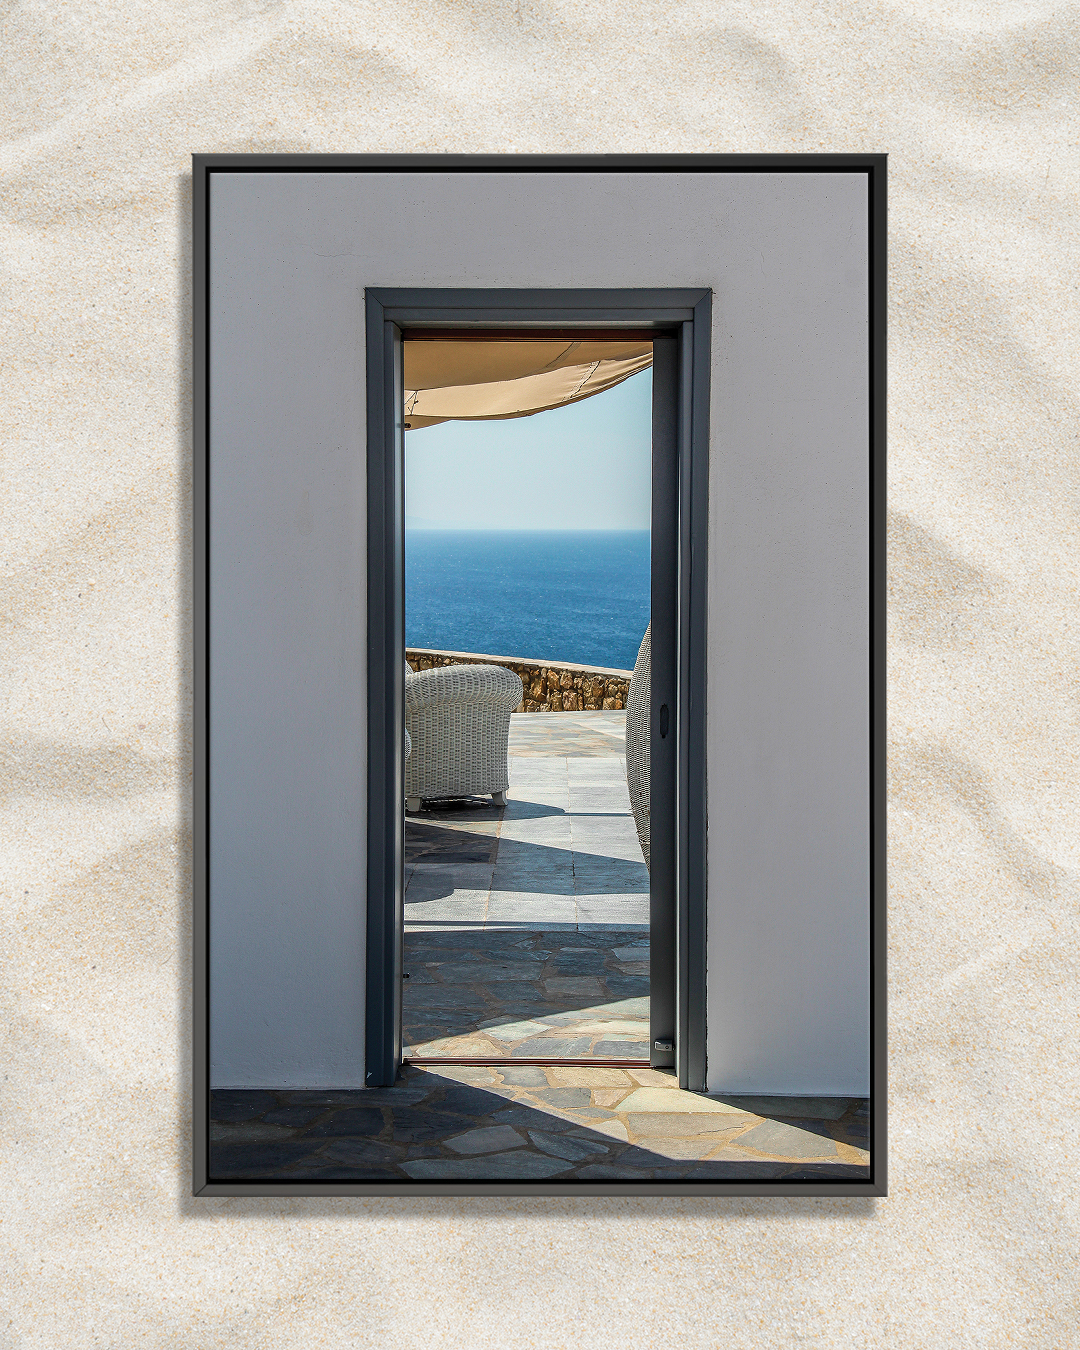 Photo of a view of balcony overlooking ocean in Mykonos through a doorway